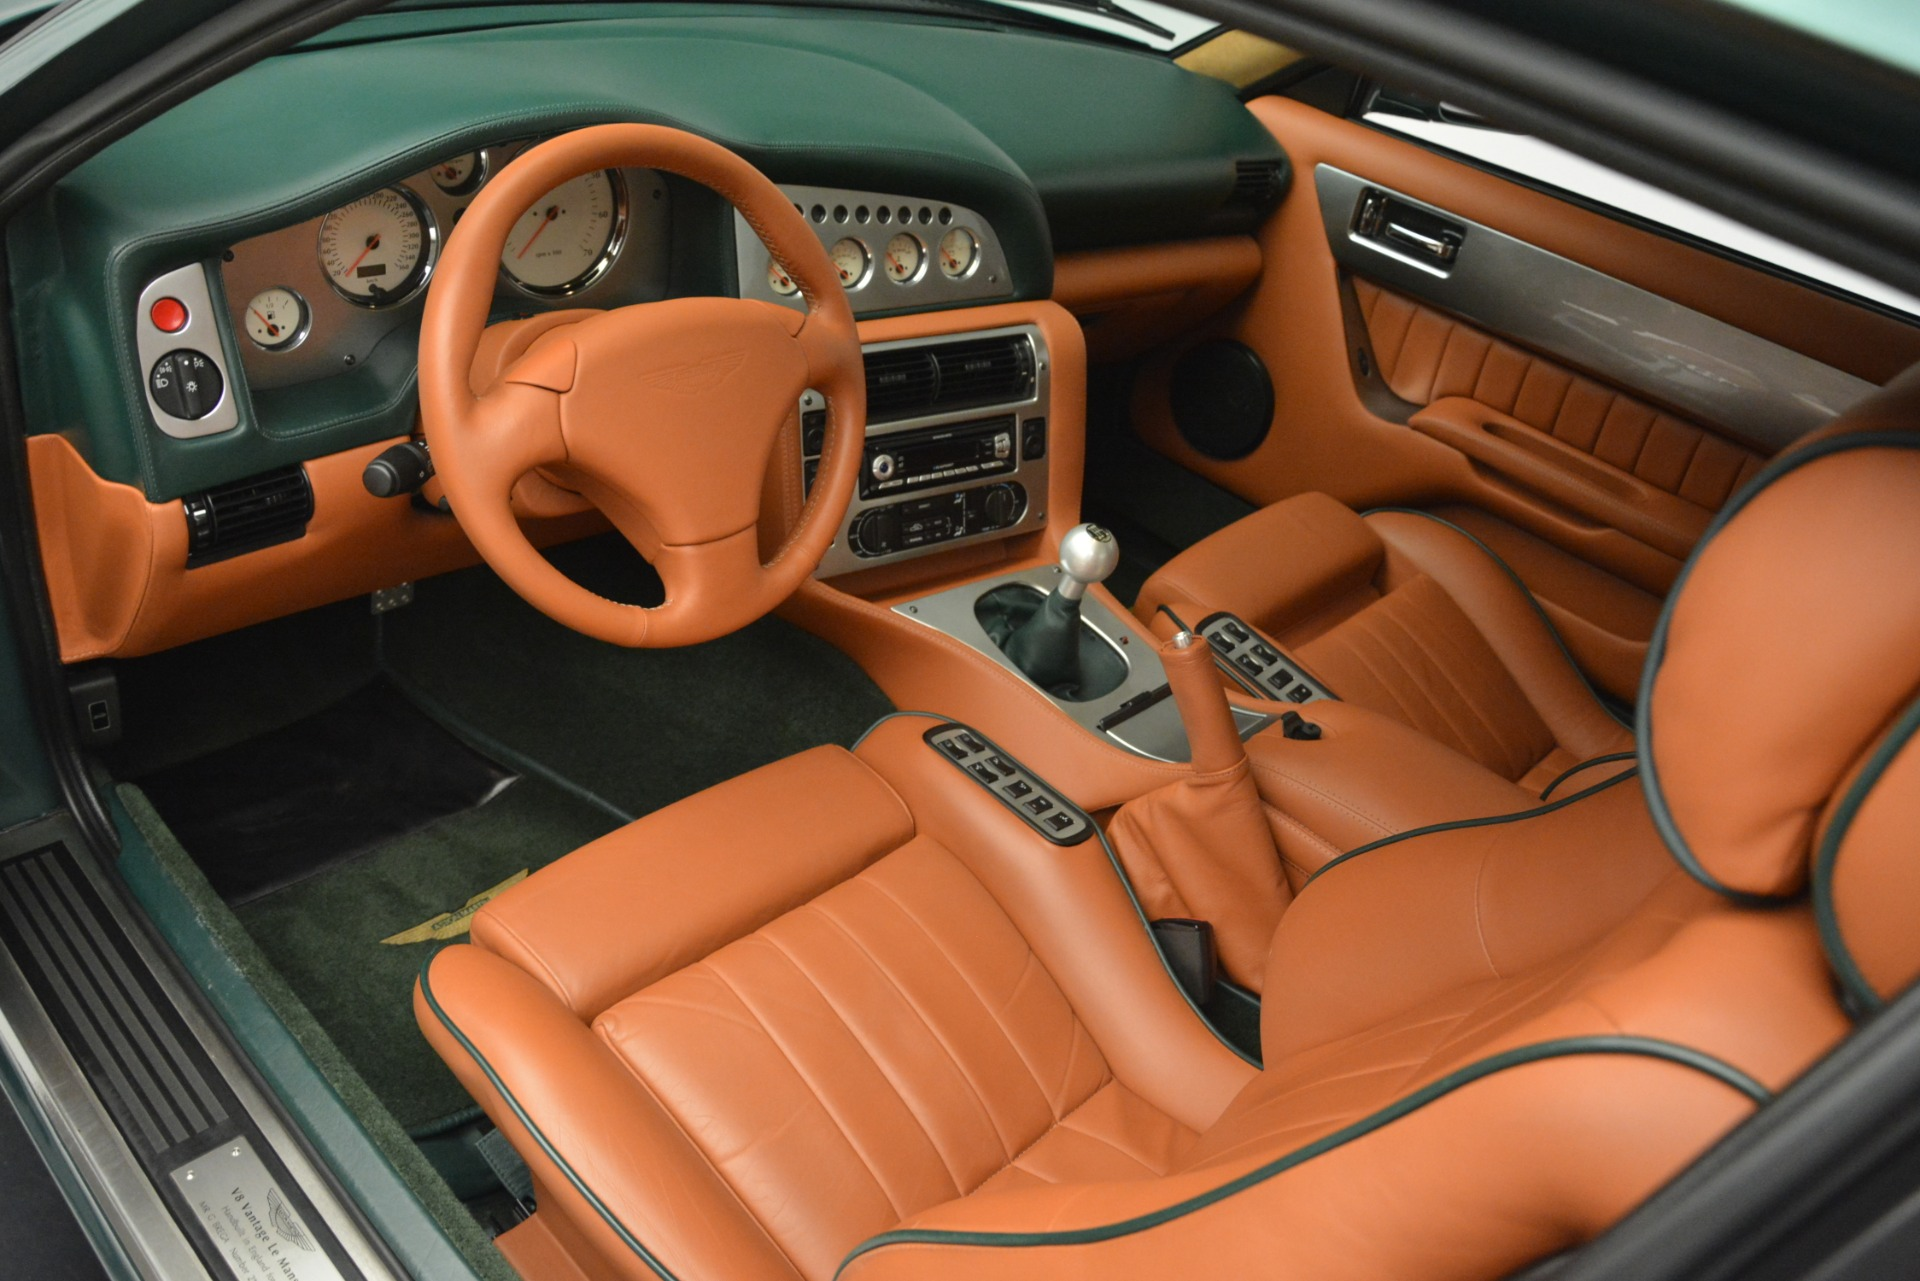 Used 1999 Aston Martin V8 Vantage Le Mans V600 Coupe For Sale In Westport, CT 2789_p15